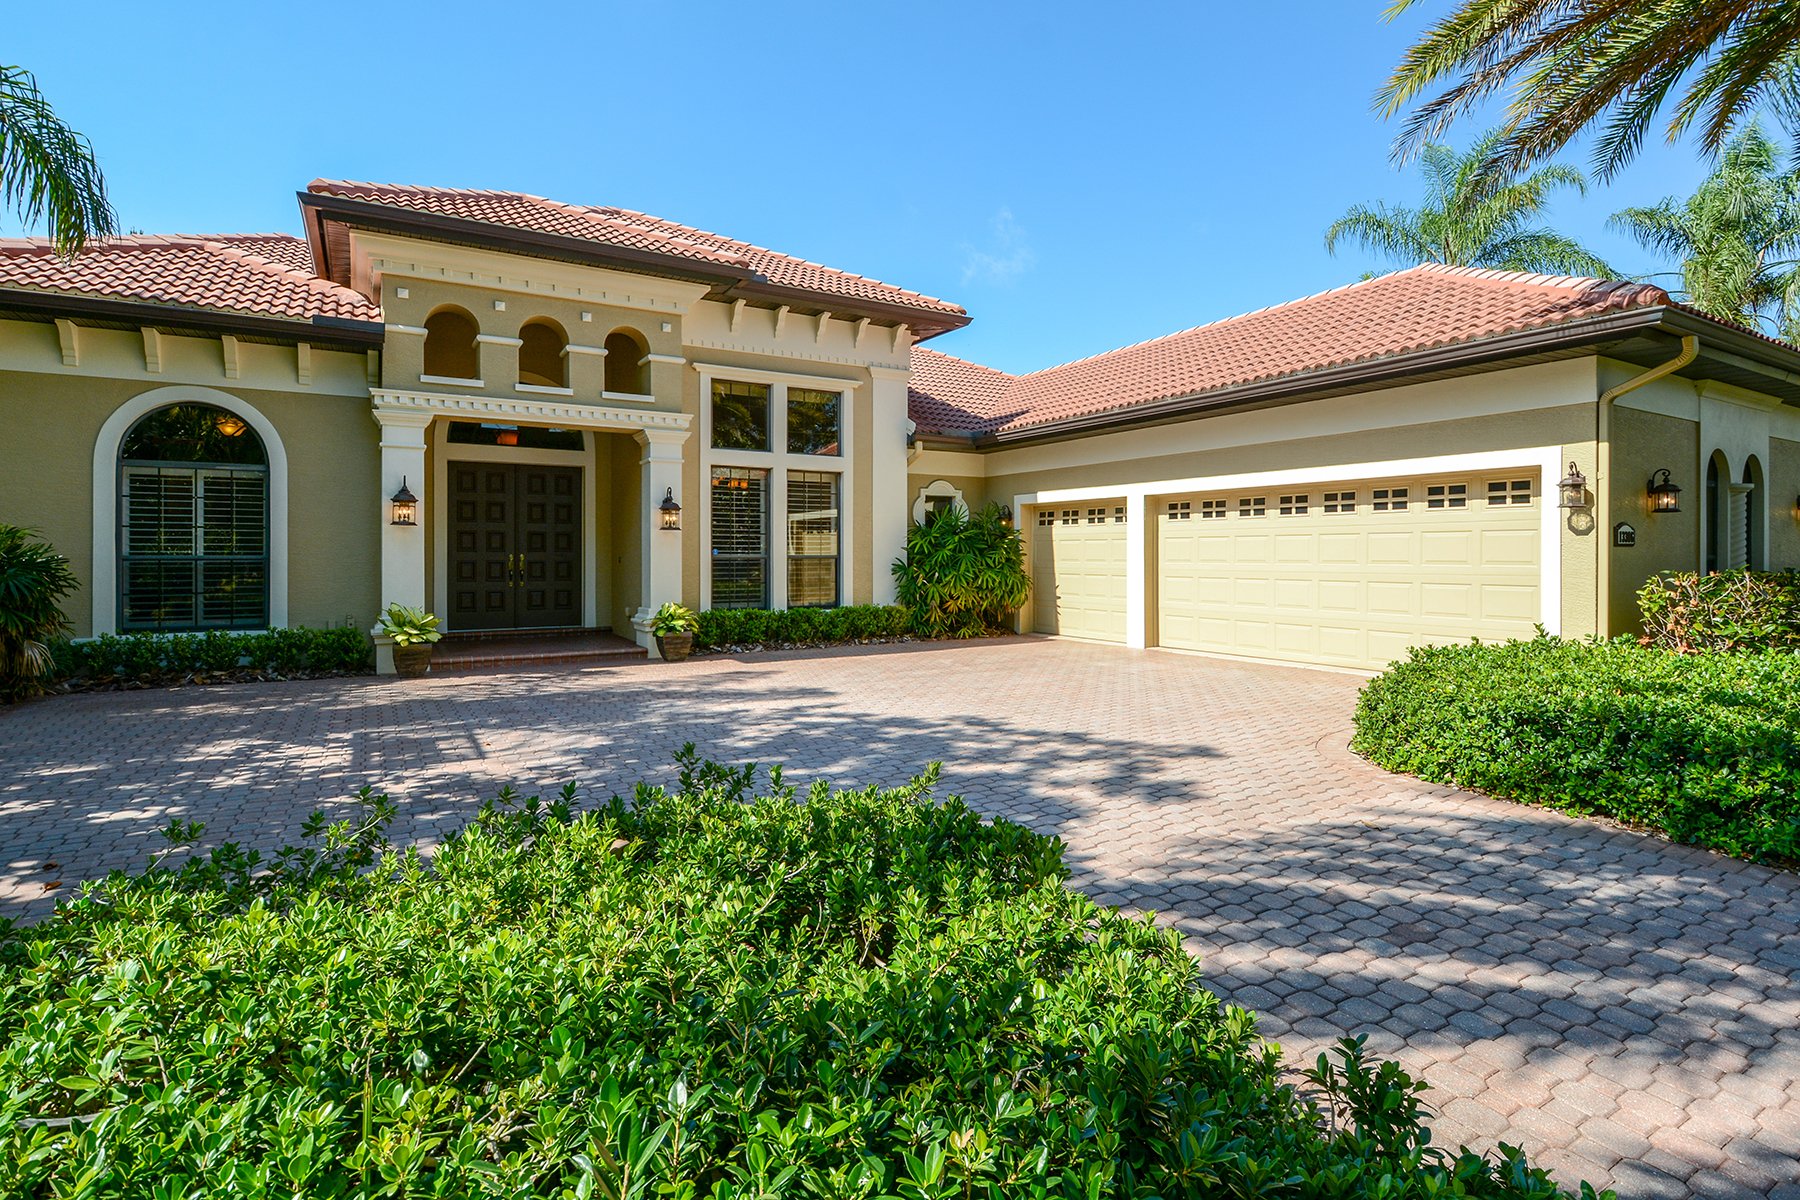 single family homes for Active at LAKEWOOD RANCH COUNTRY CLUB 13306 Lost Key Pl Lakewood Ranch, Florida 34202 United States